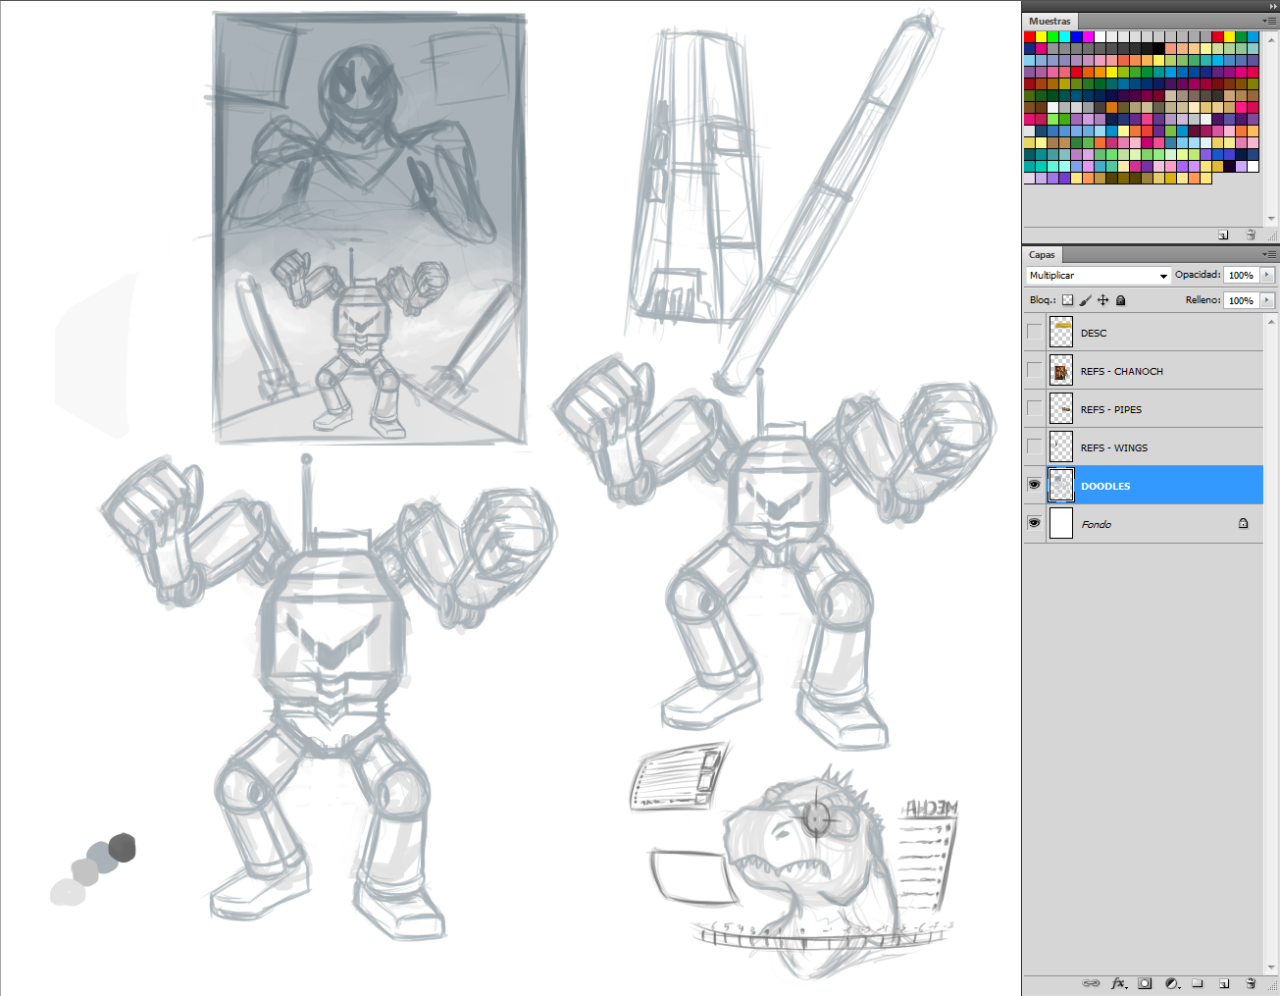 Collection of WiPs for a drawing done for @fgsshinyhoardLizard Powered Robot.We need more of that in fiction. #Artwork#Robot#Mecha#Lizard-Man#Science Fiction #Artists on Tumblr #Digital Artwork #Artist: James Corck  #Art and Illustration #WiP #Work in Progress